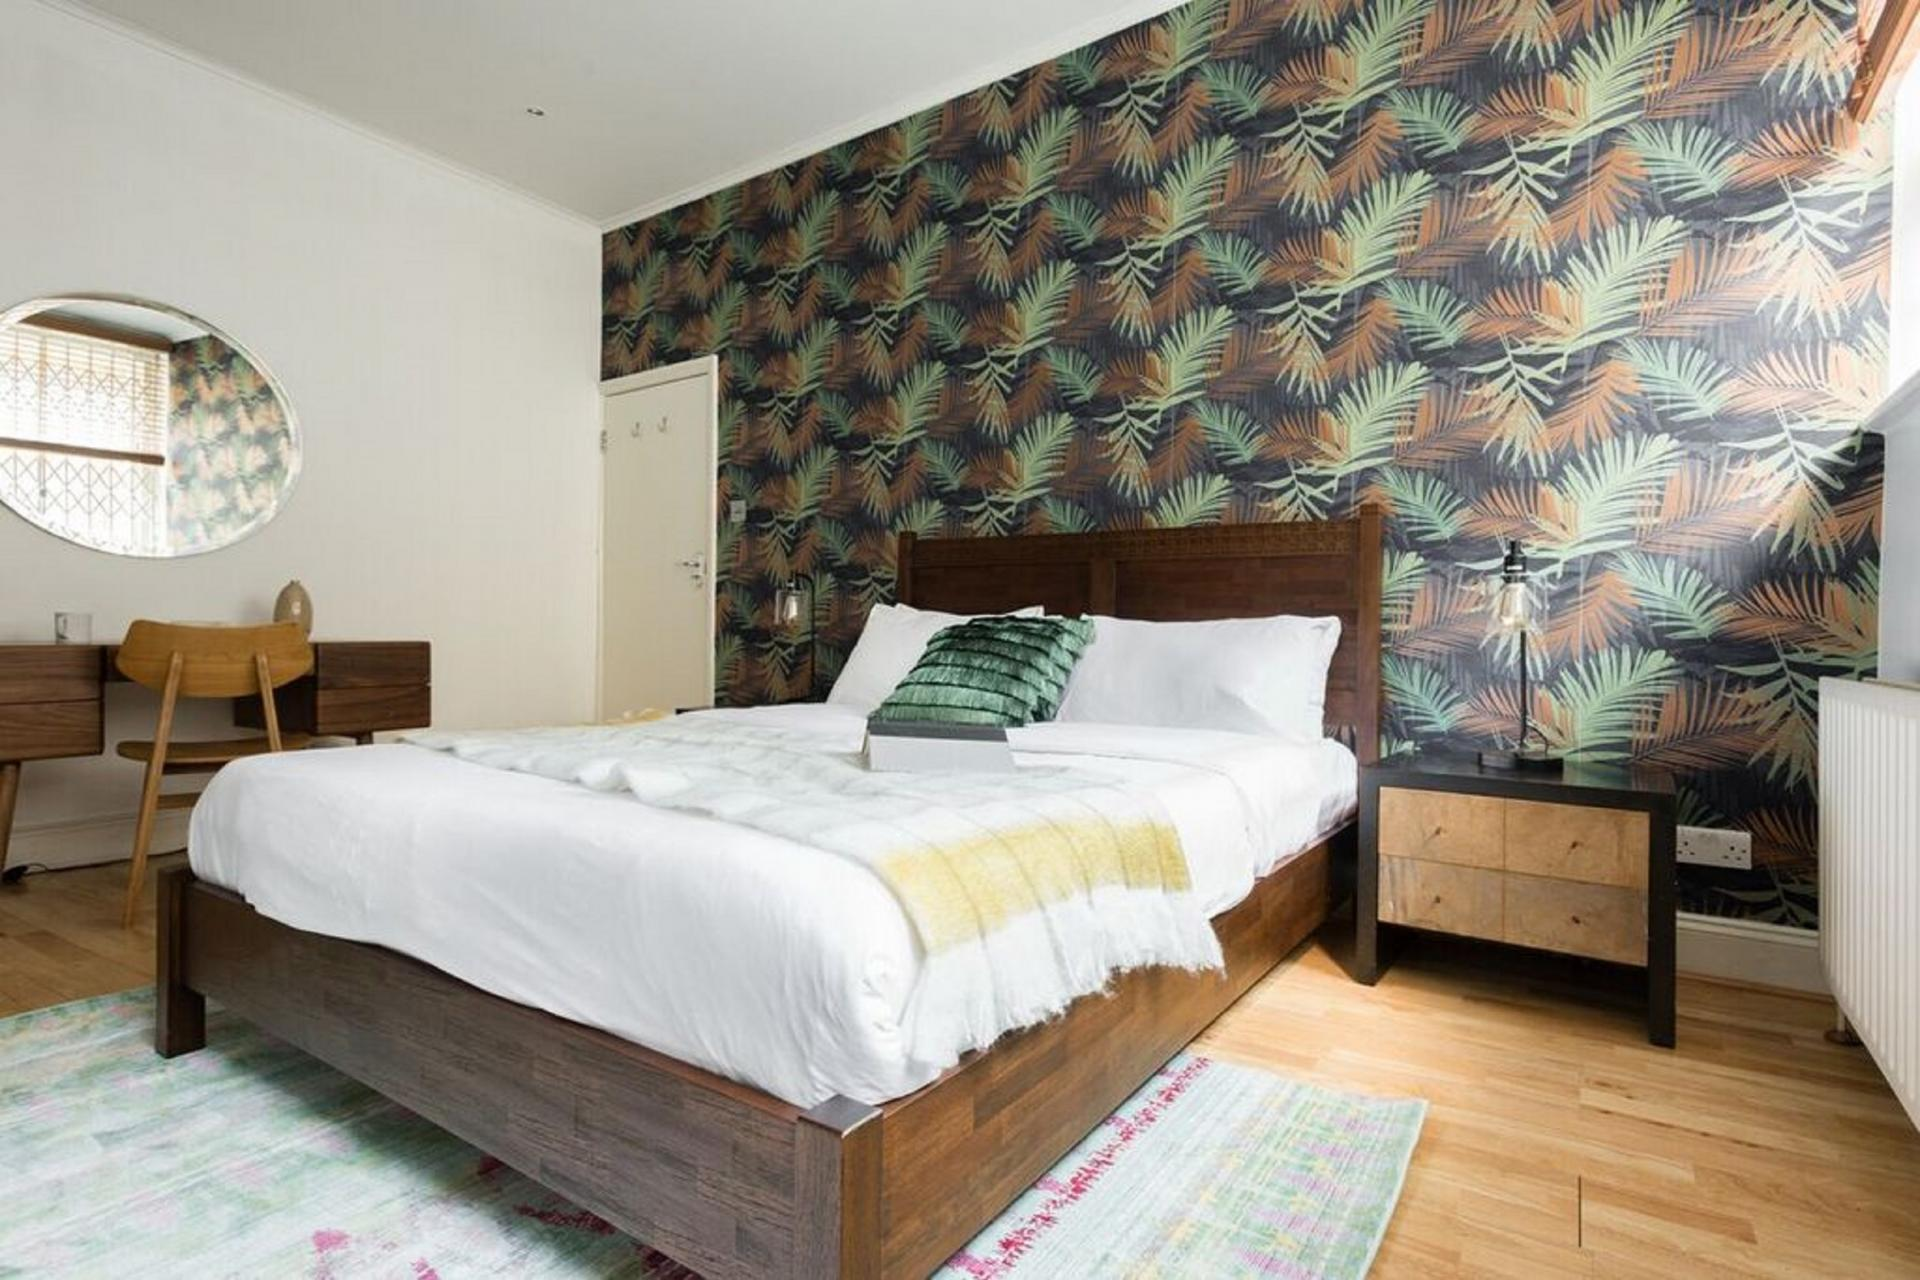 Bedroom at The Bayswater Gardens House, Bayswater, London